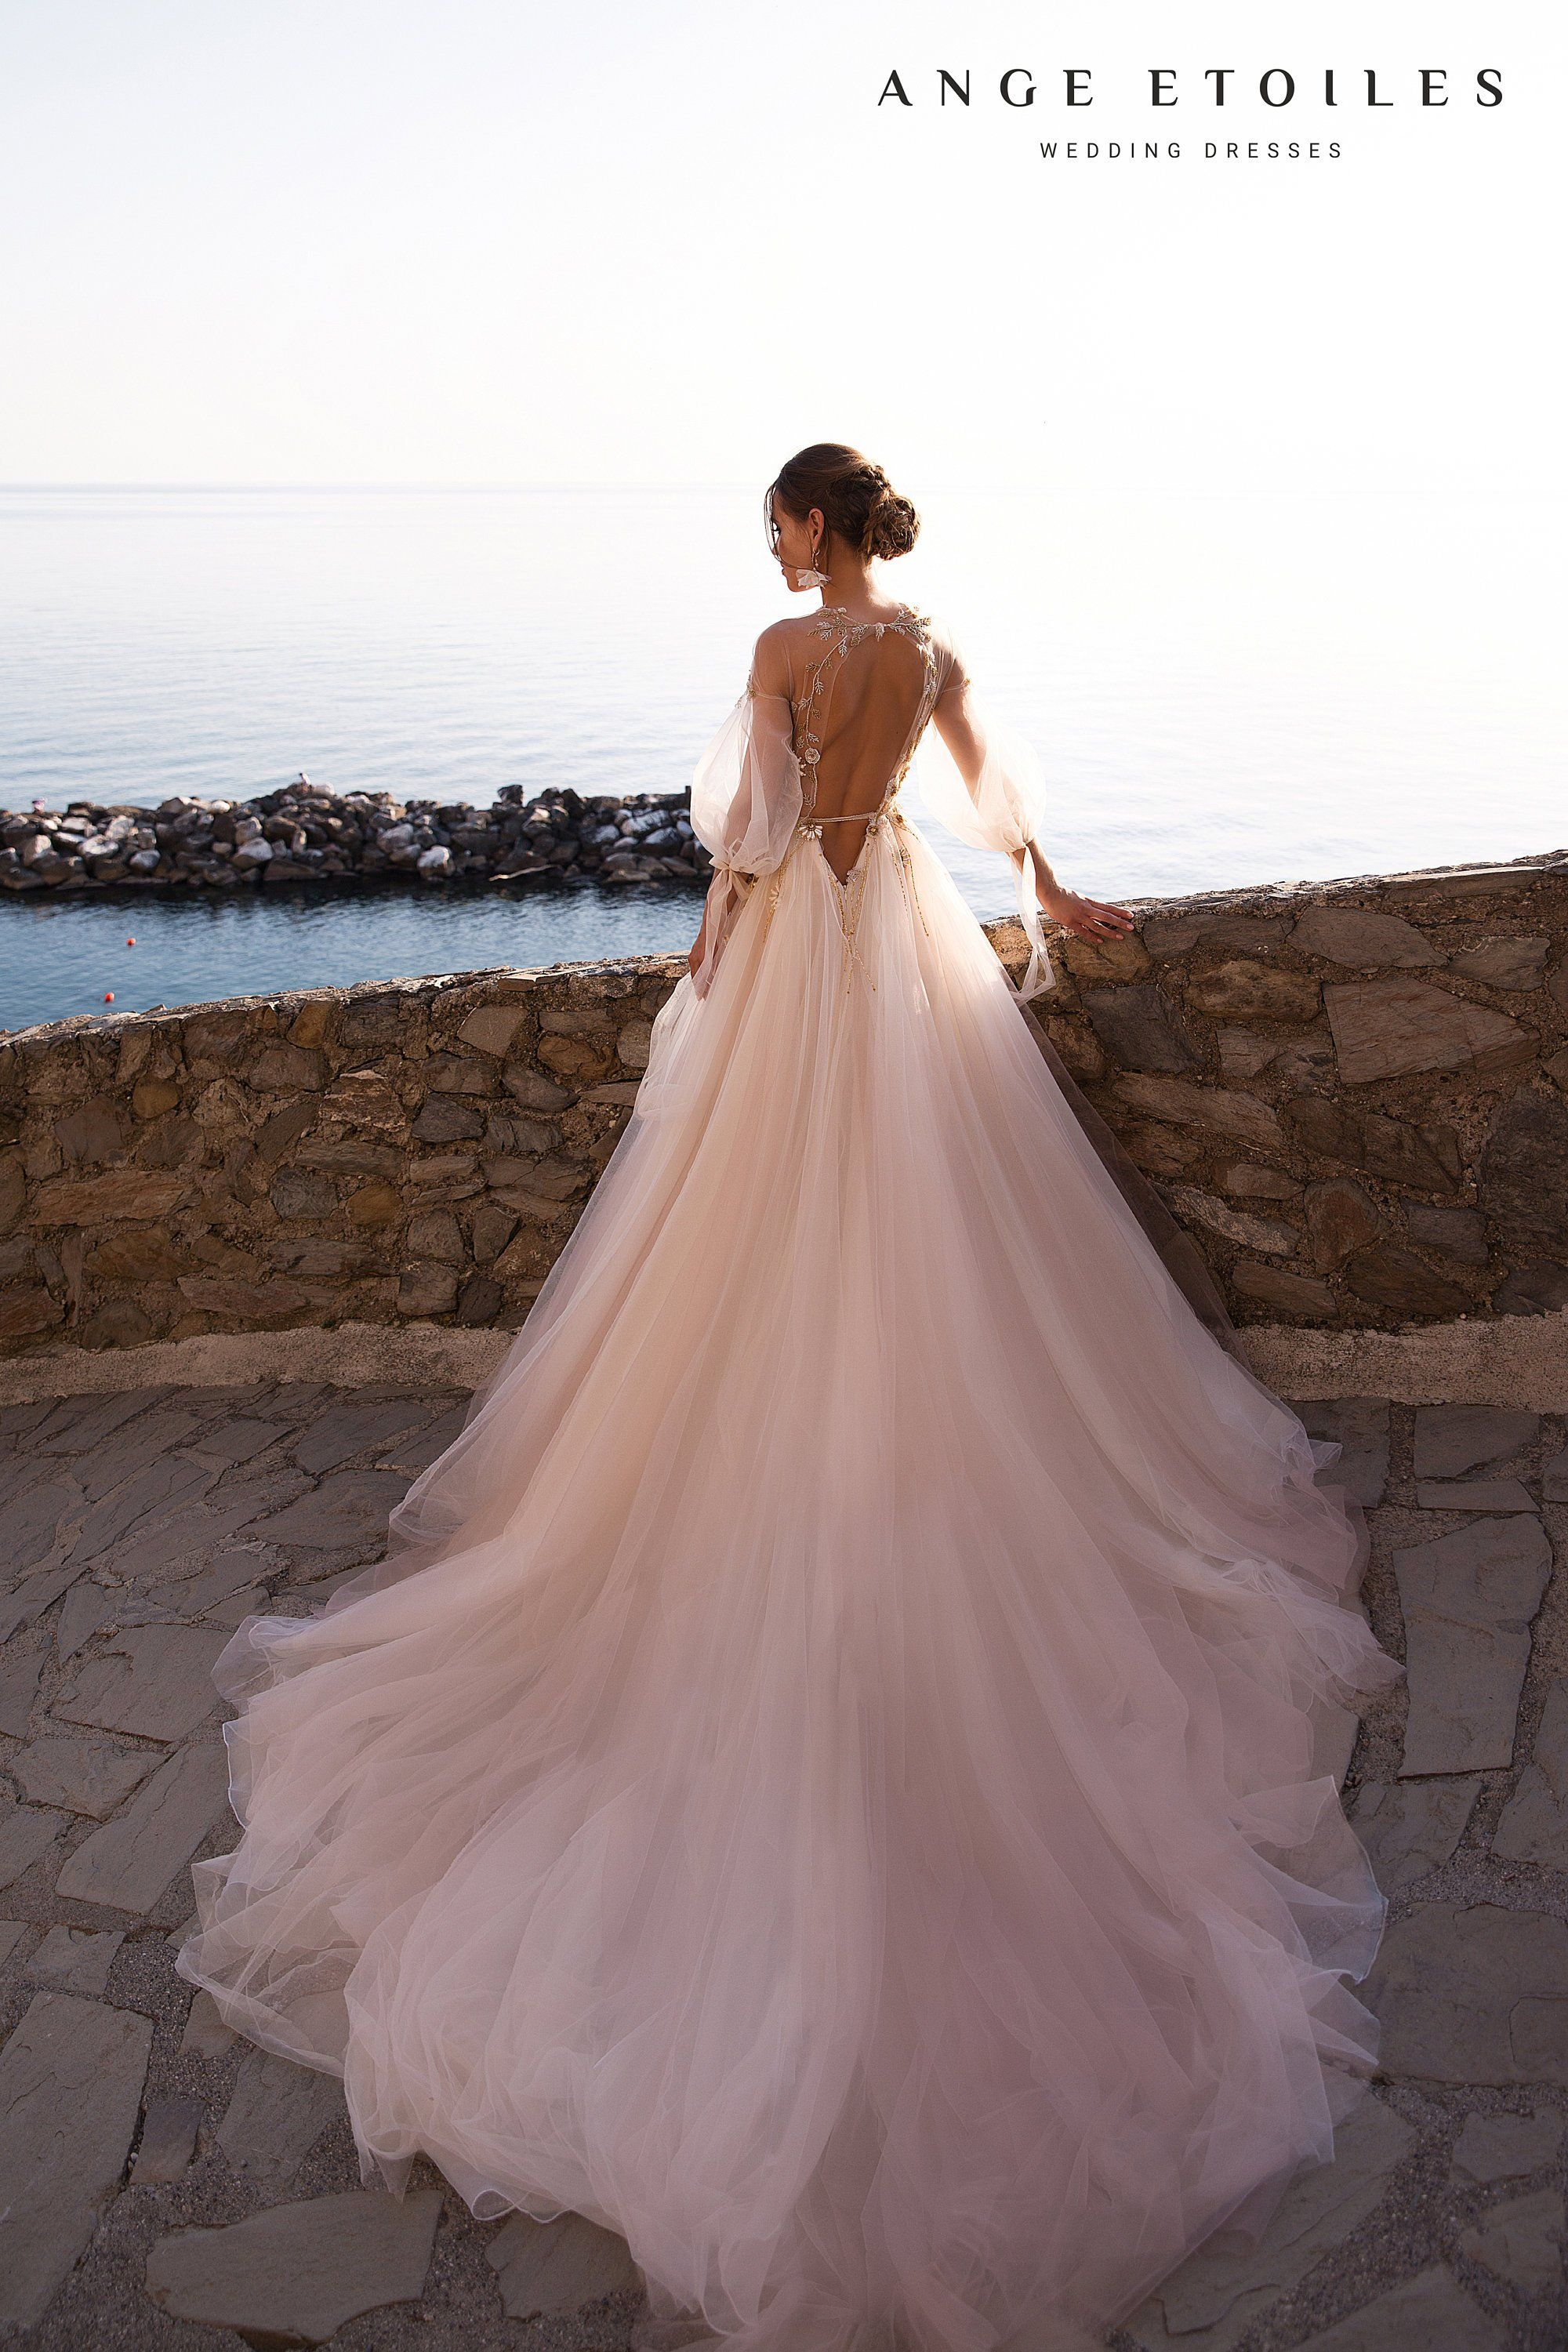 Photo of Wedding dress LOLA by Ange Etoiles with long train • Exclusive bridal gown • Fascinating wedding dress •